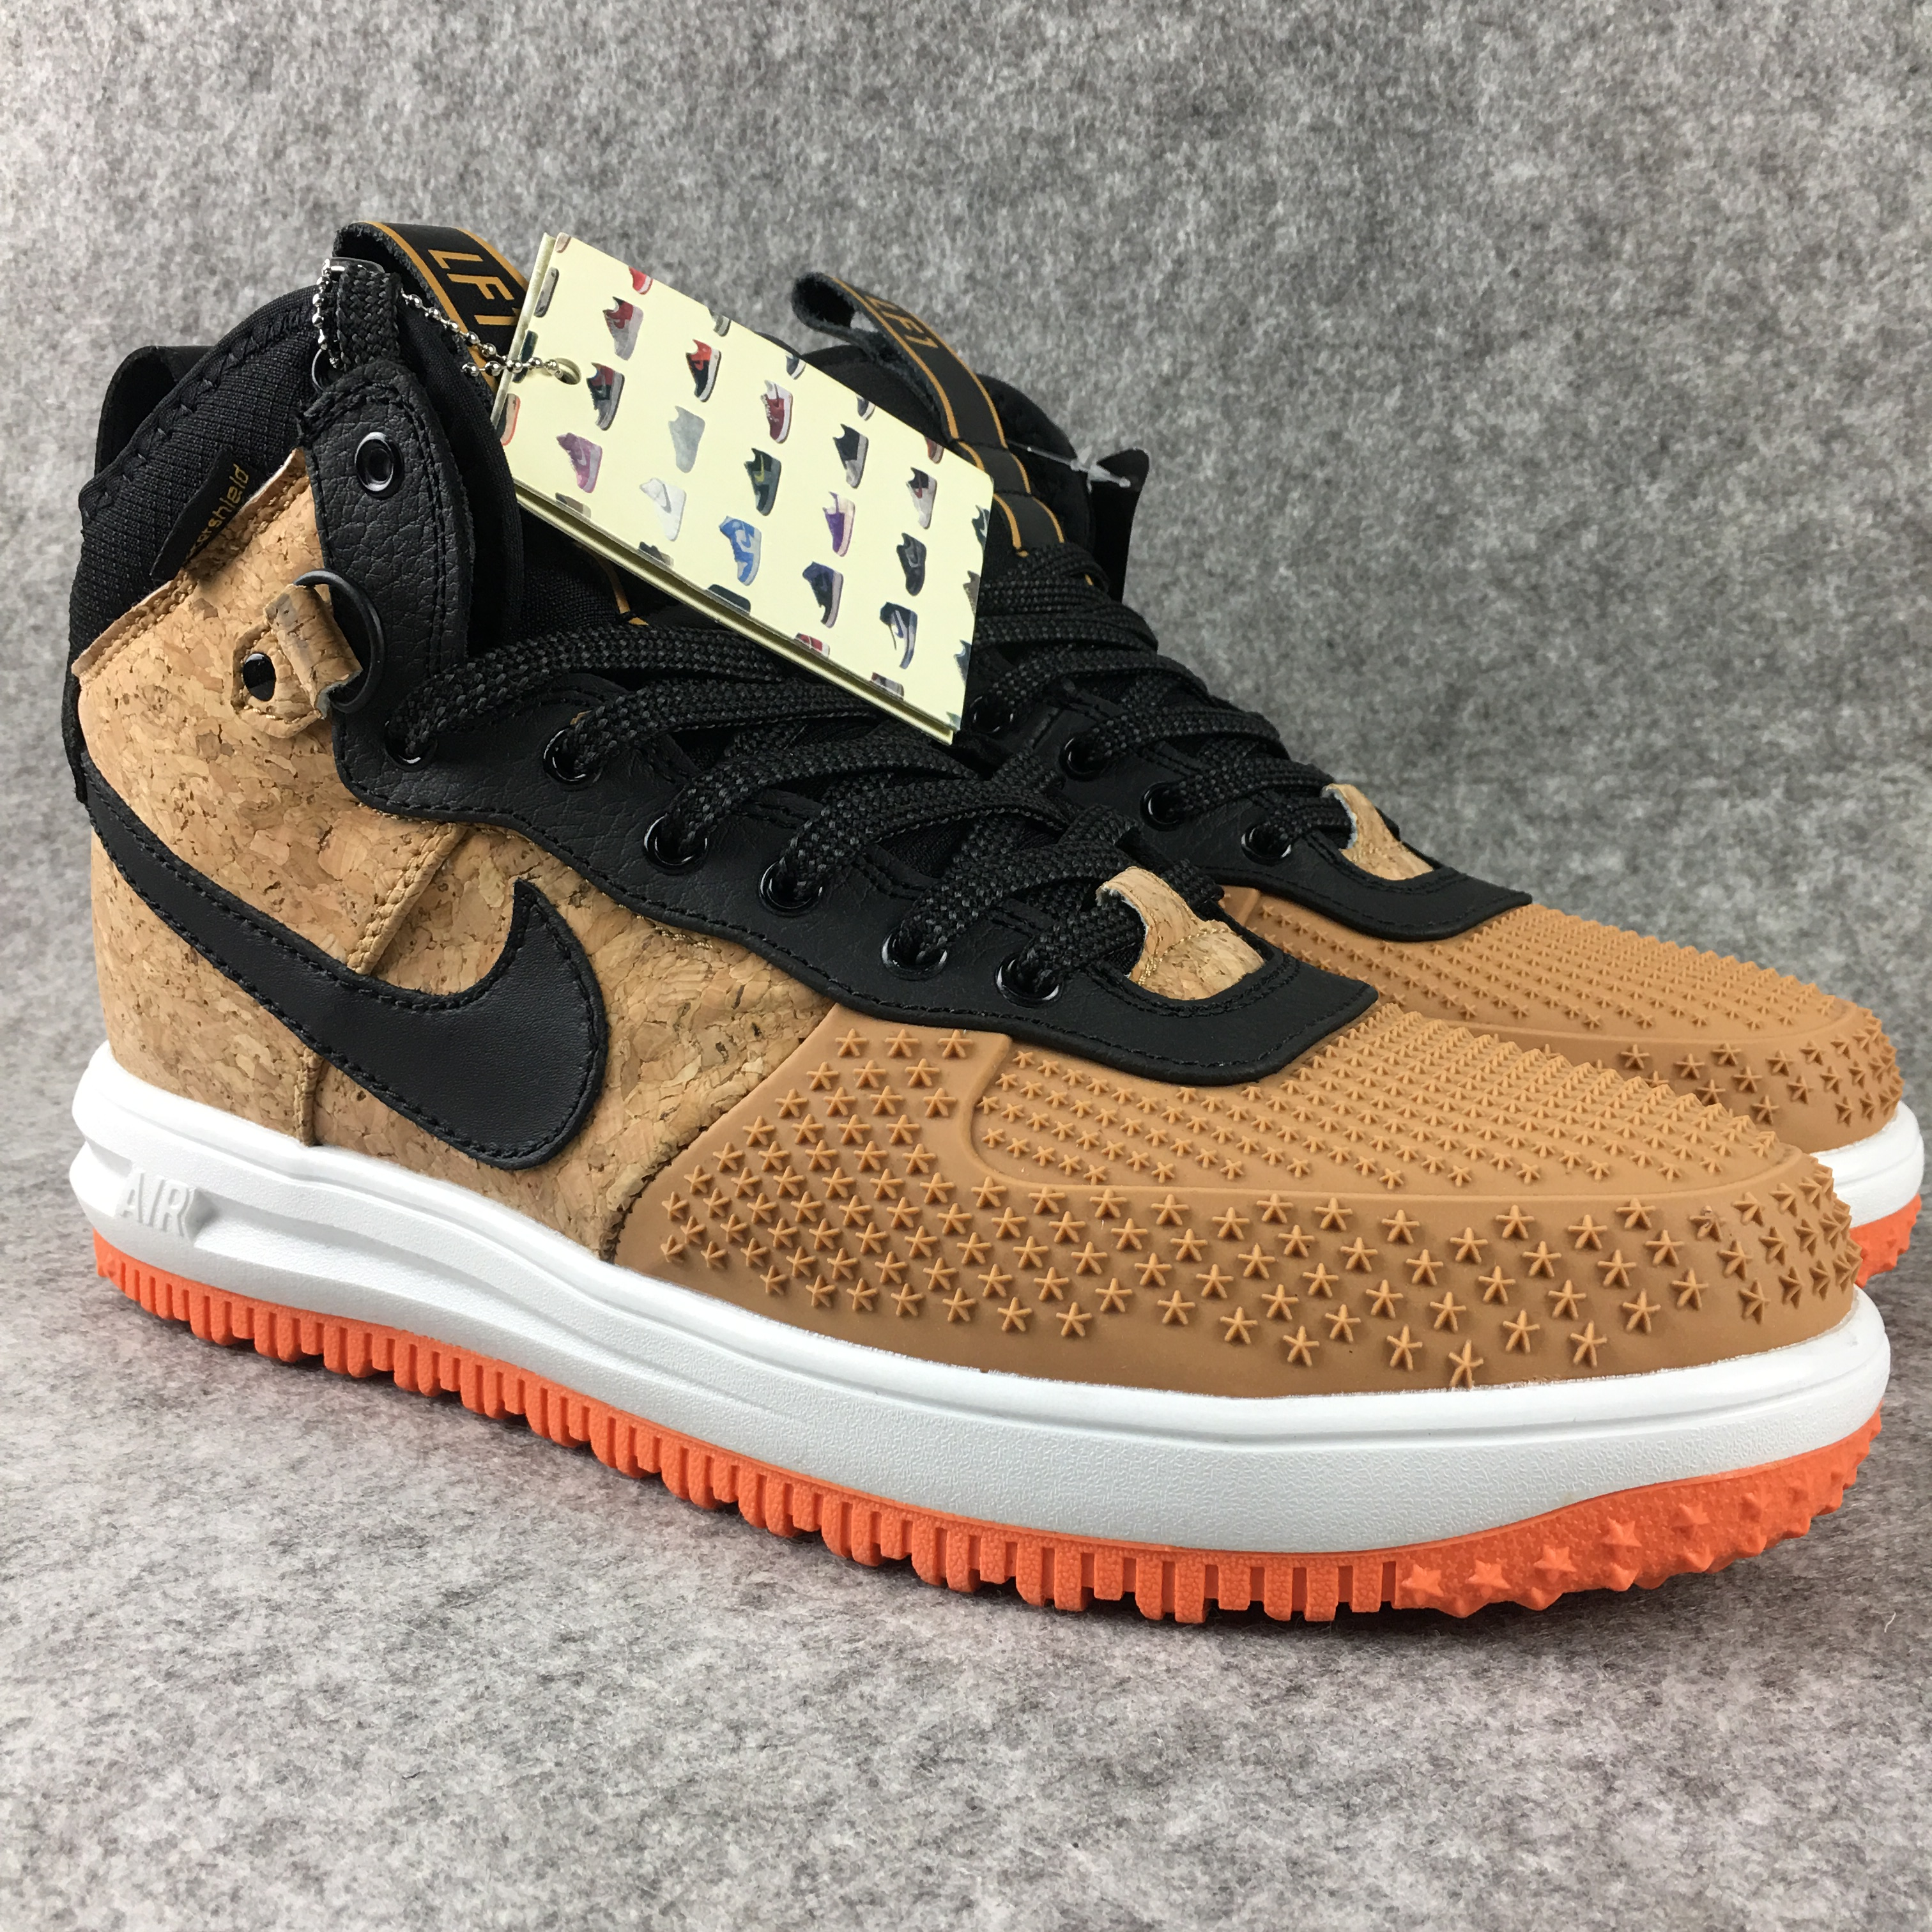 New Nike Lunar Force 1 High Cork Wheat Yellow Black